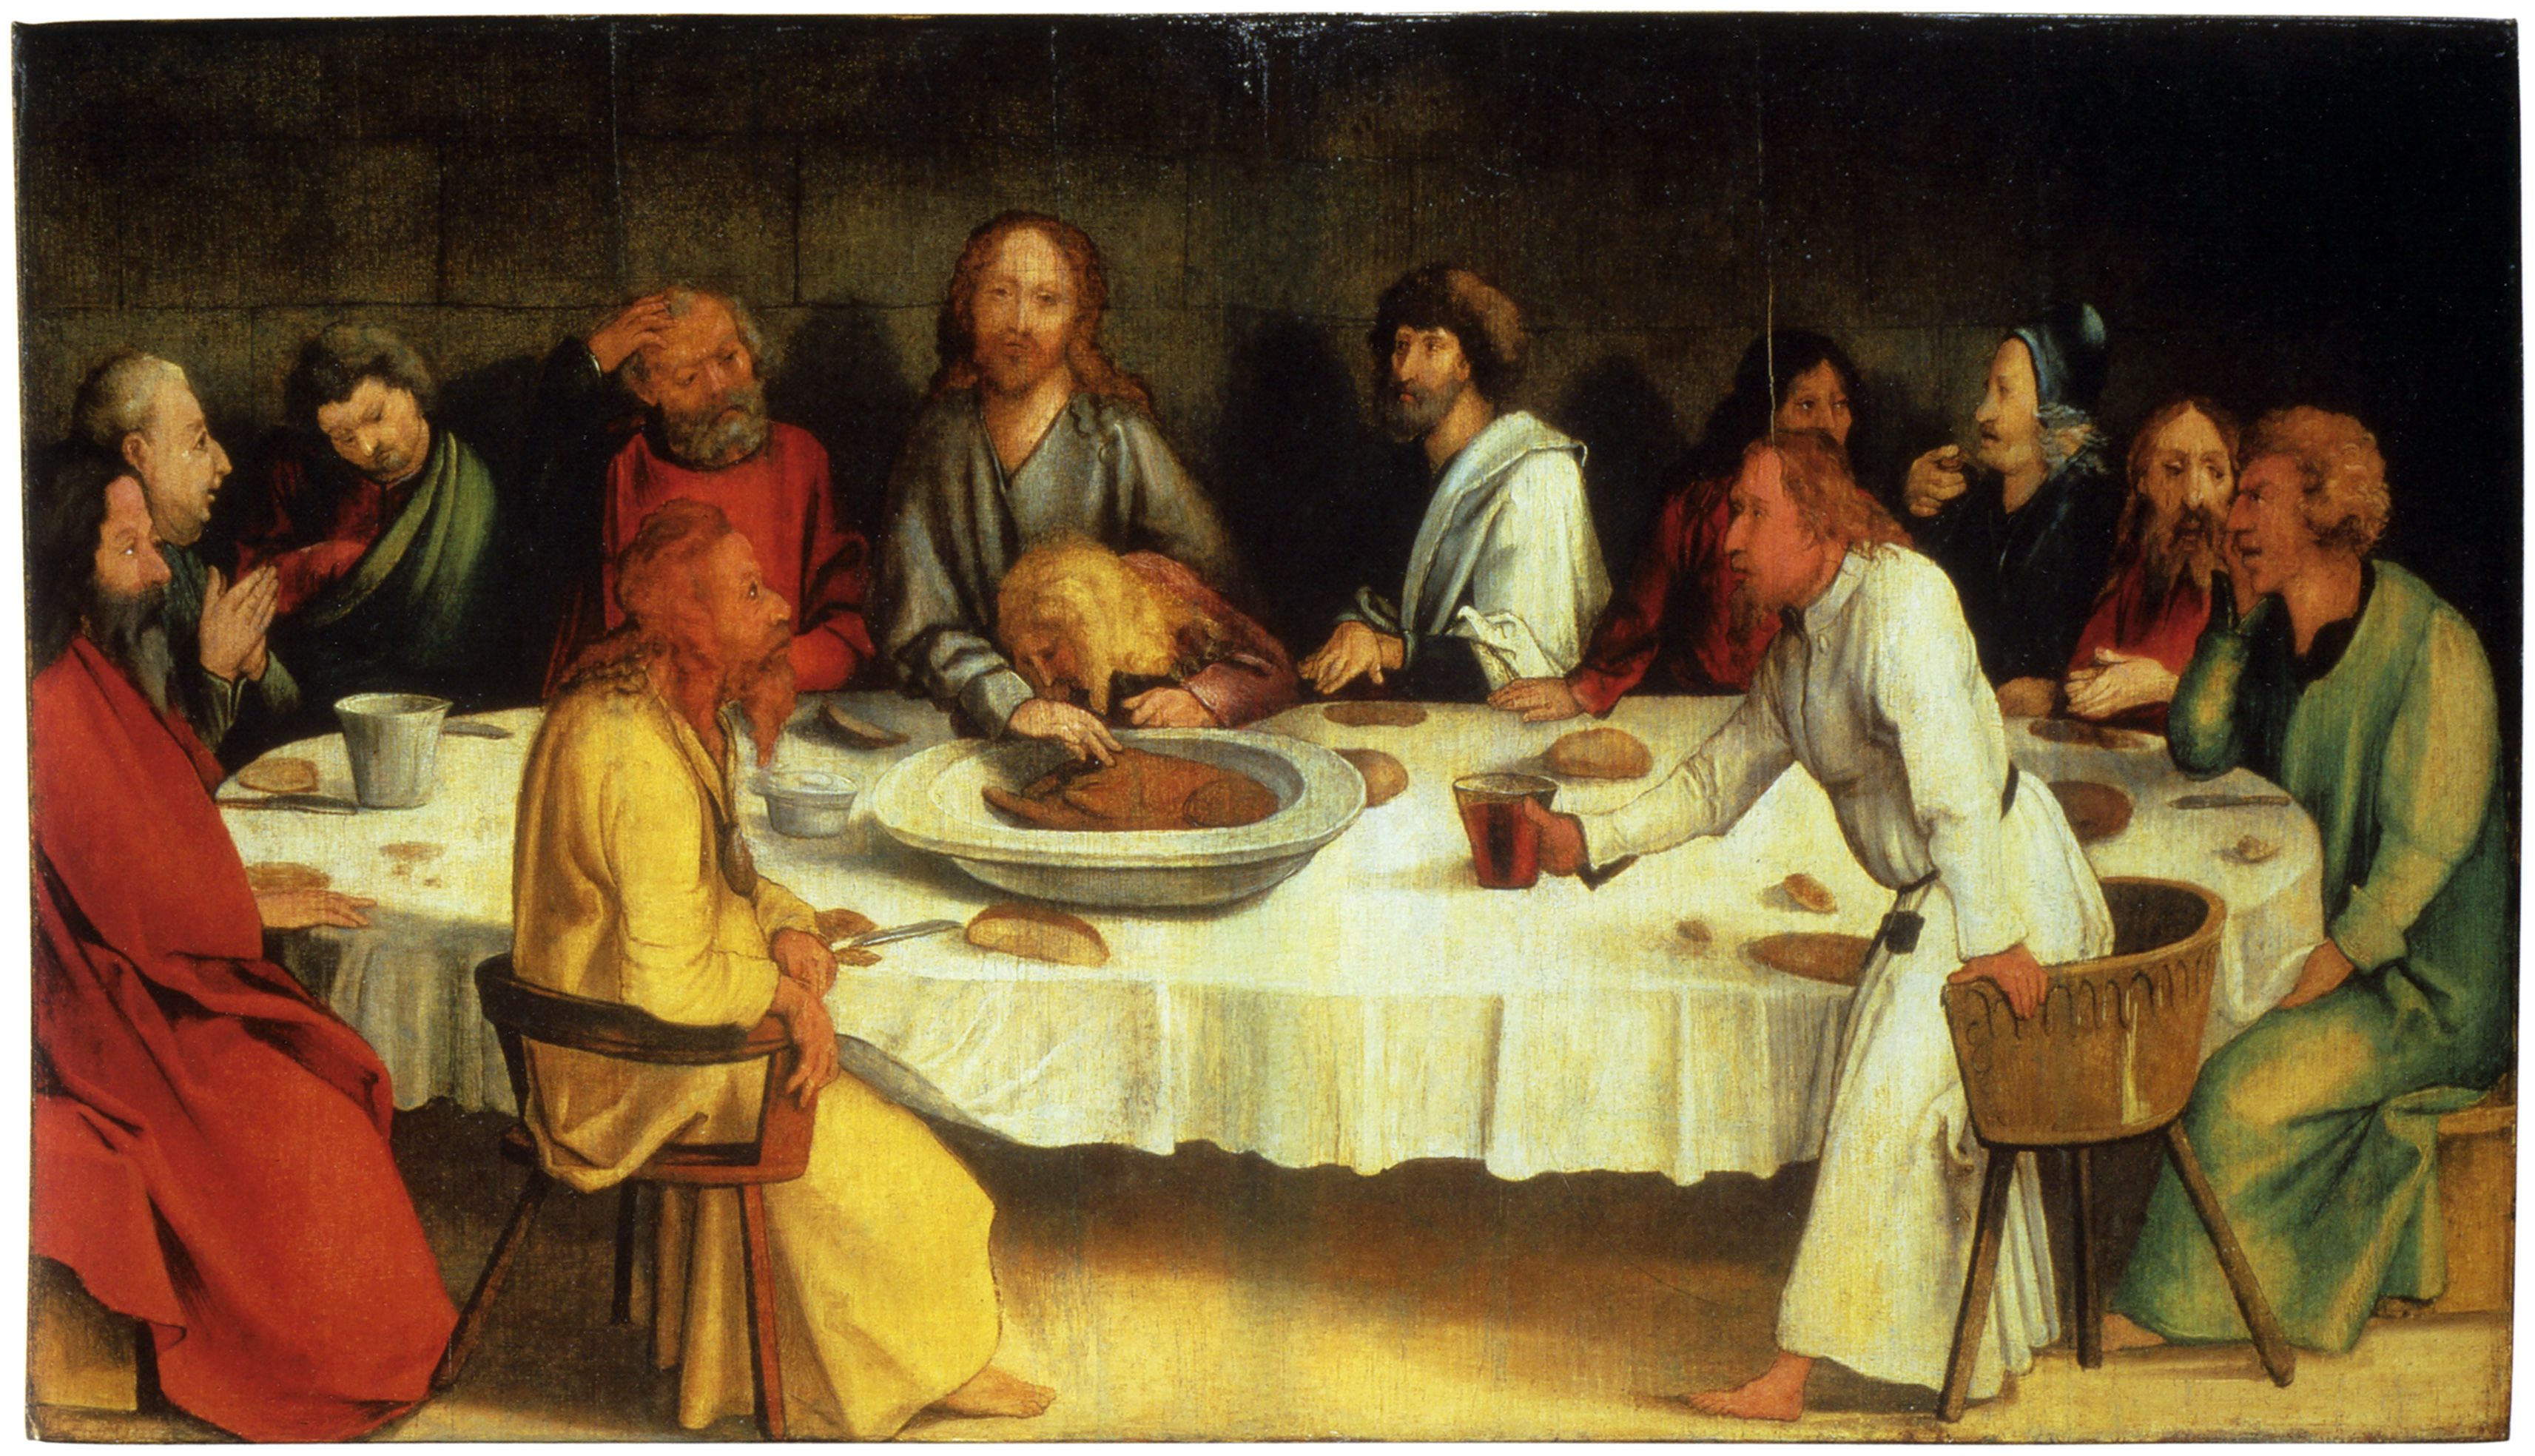 lsst supper images | Last Supper (Coburg Panel) | last supper ...